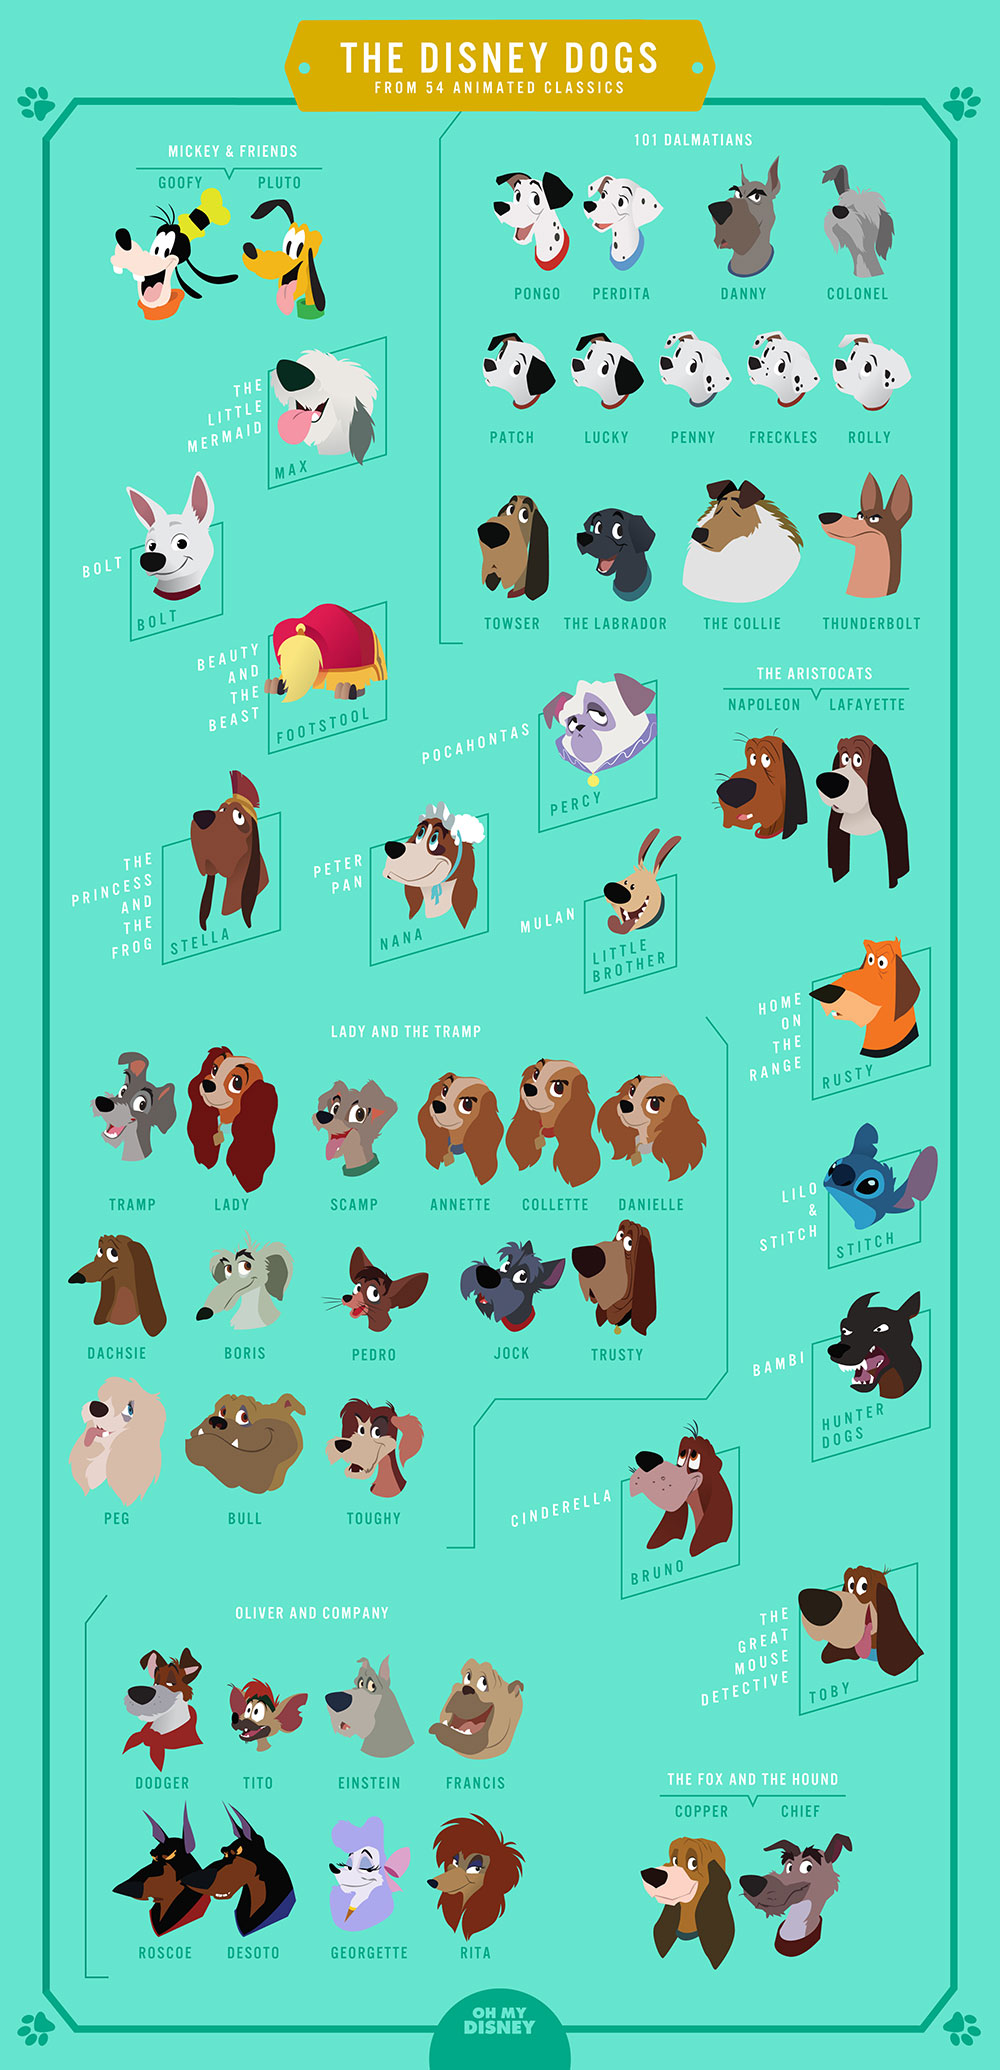 Male Dog Names From Disney Movies